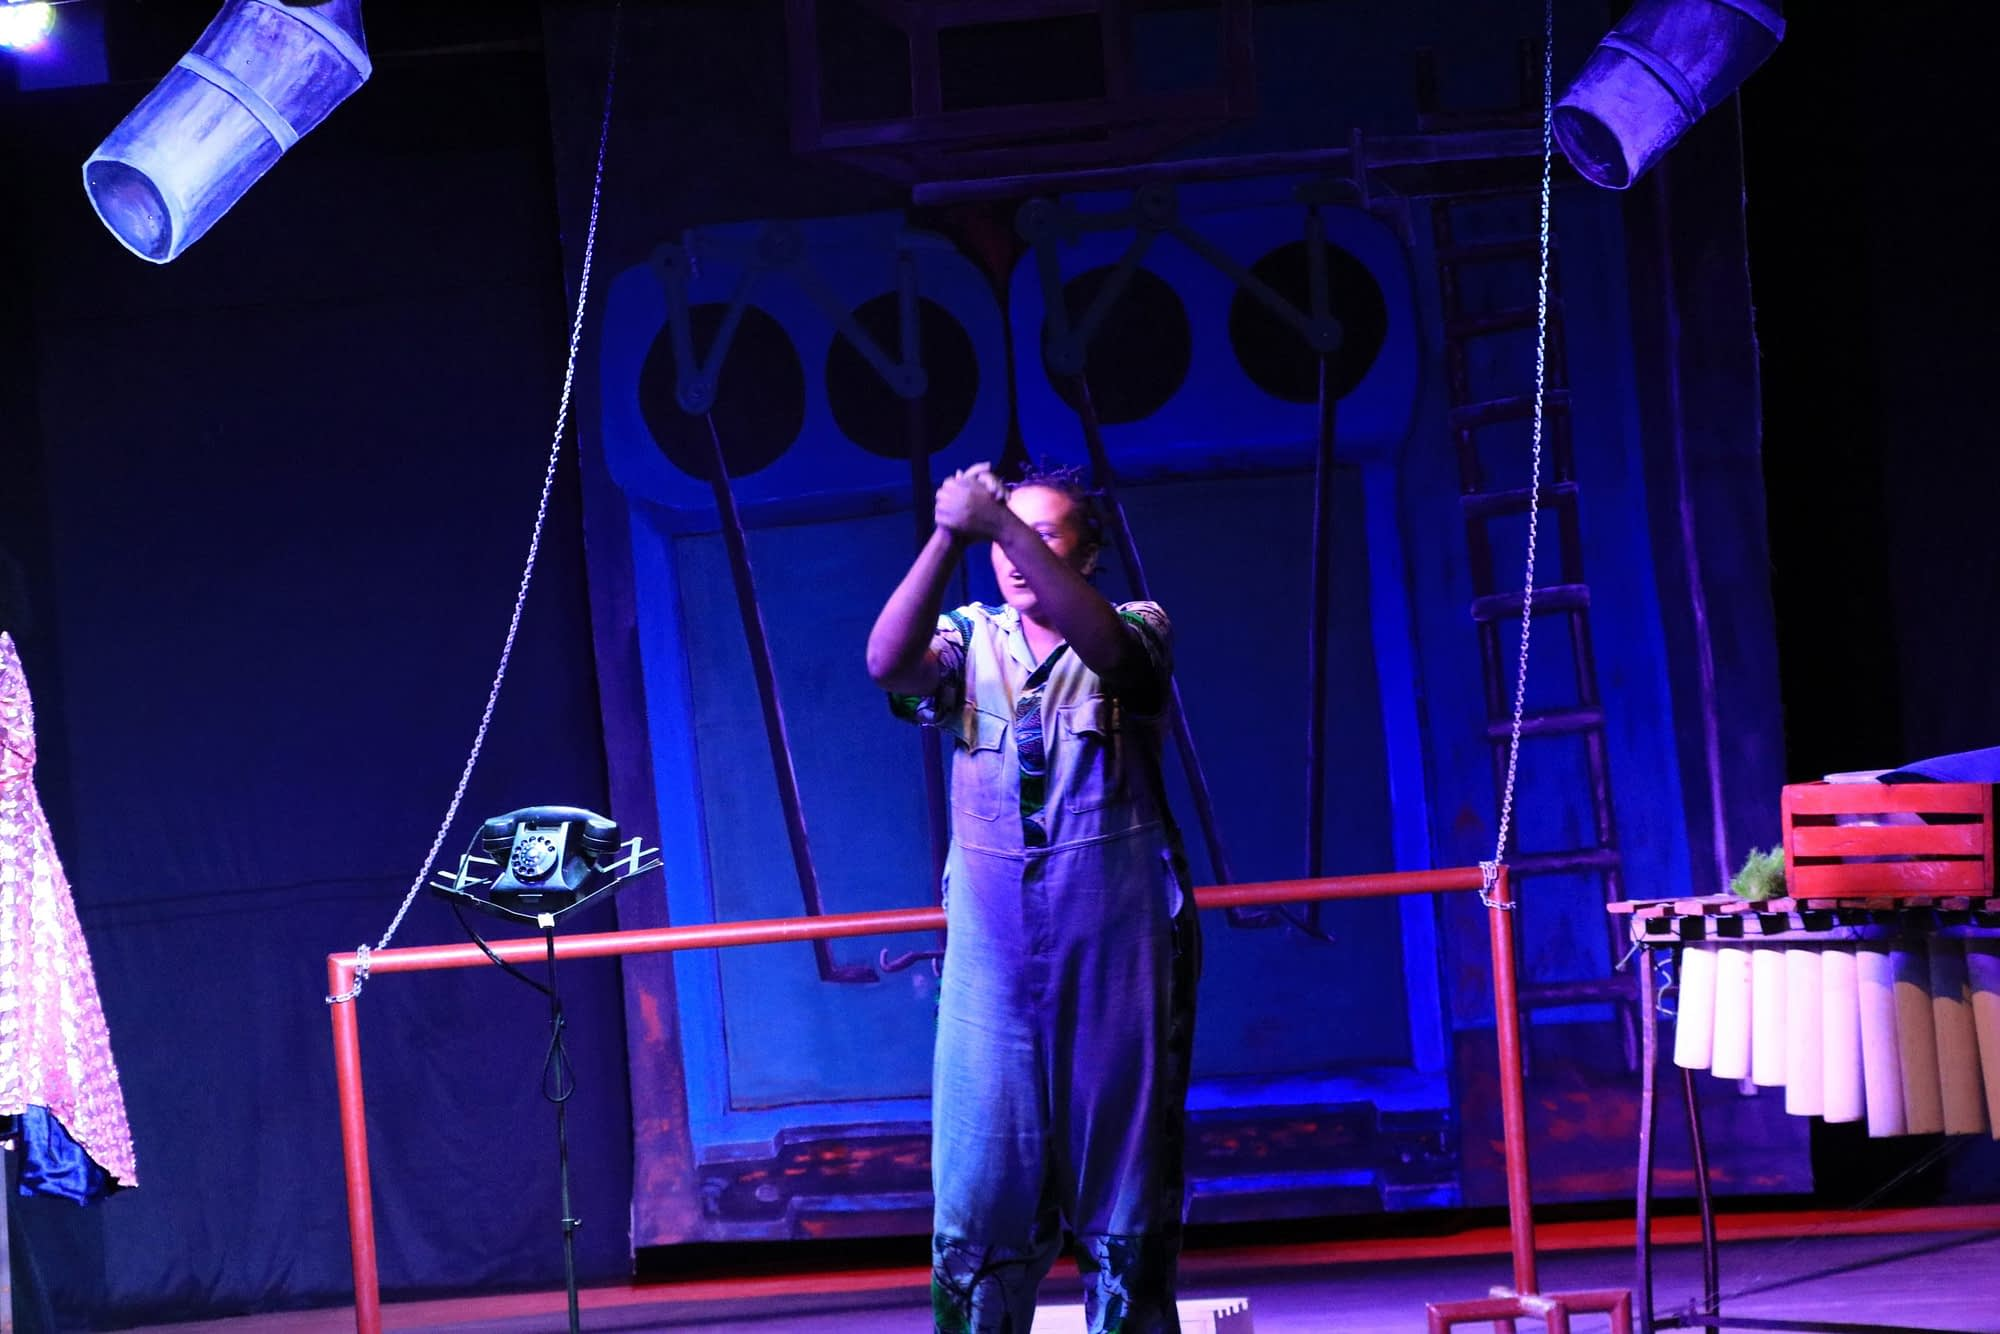 Zimbabwean actress Charity Dlodlo in Once Actress at Madsoc Theatre in Lilongwe, Malawi (Photo by Michael Mambo)